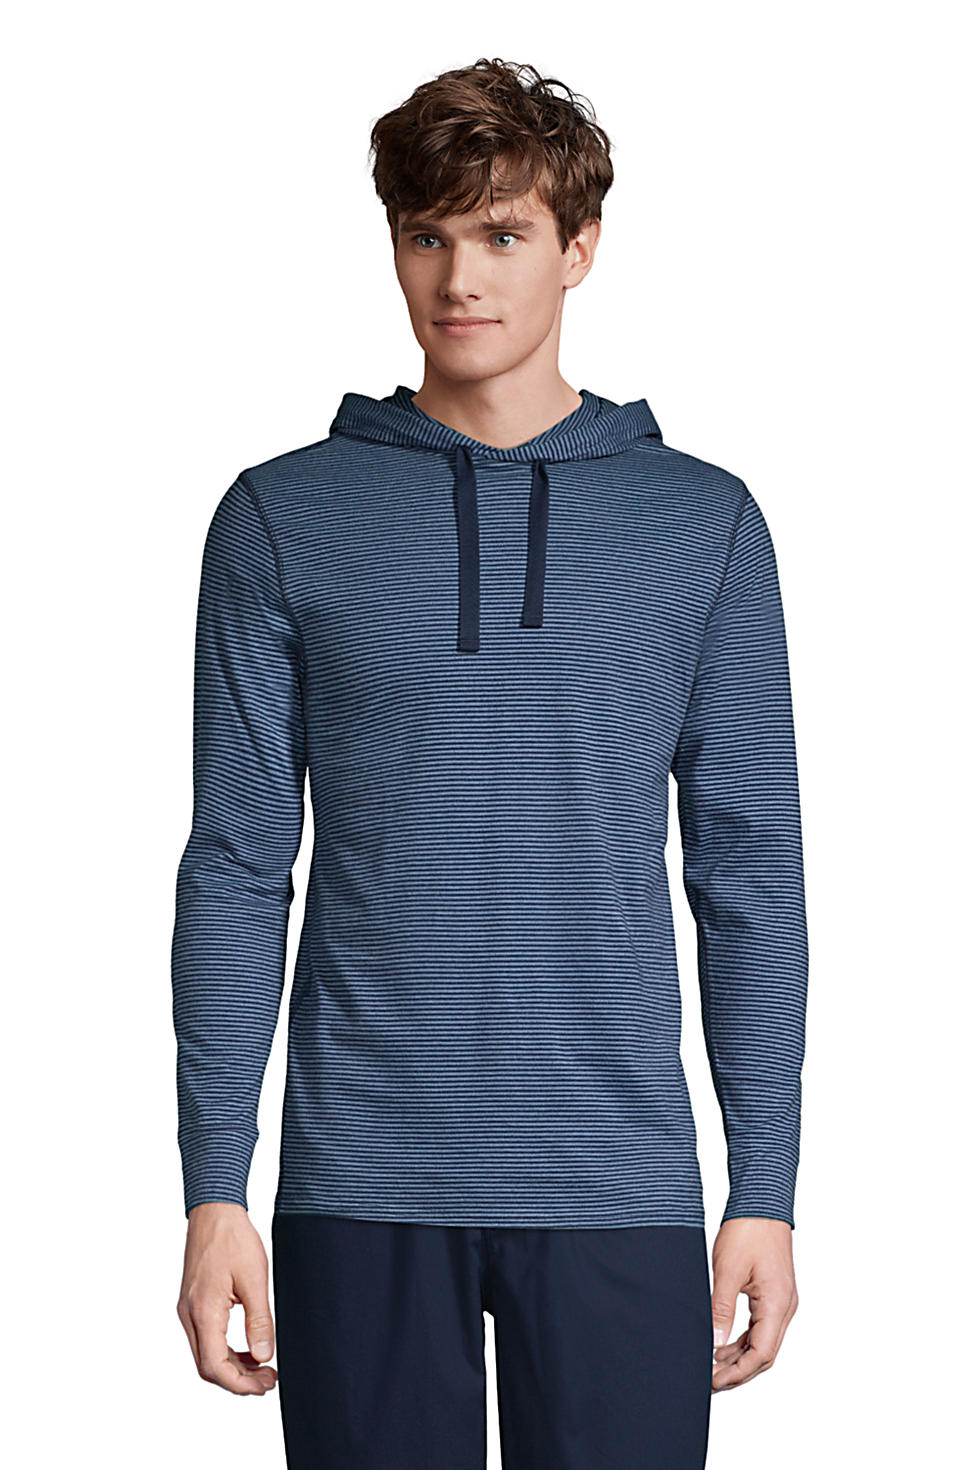 Lands' End Men's Knit Hooded Pajama Shirt